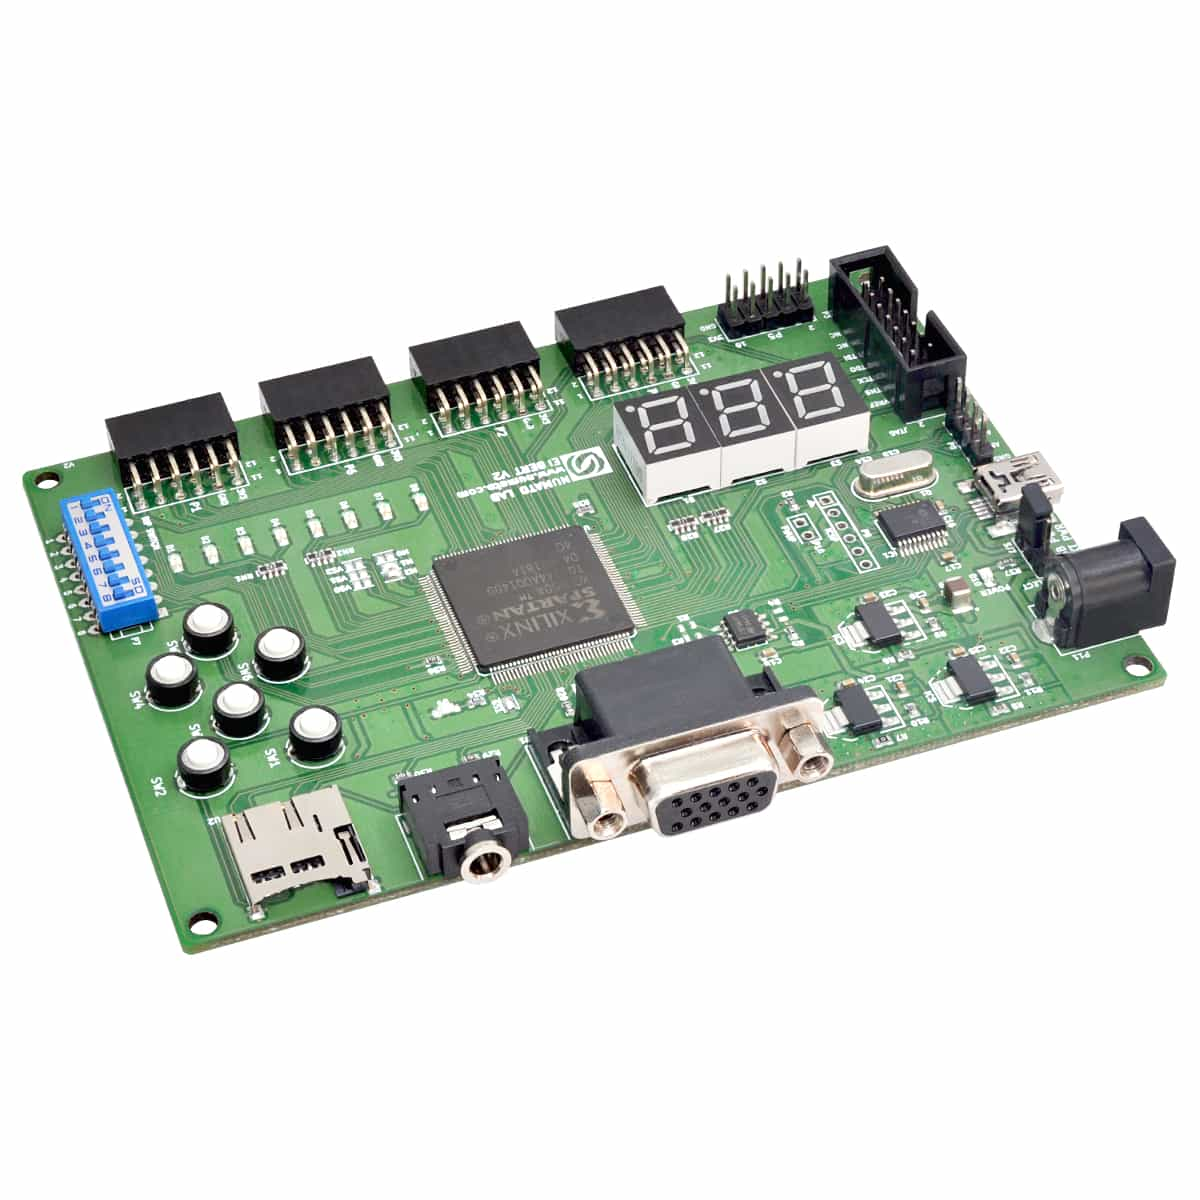 System Verilog Adapter Elbert V2 Spartan 3a Fpga Development Board